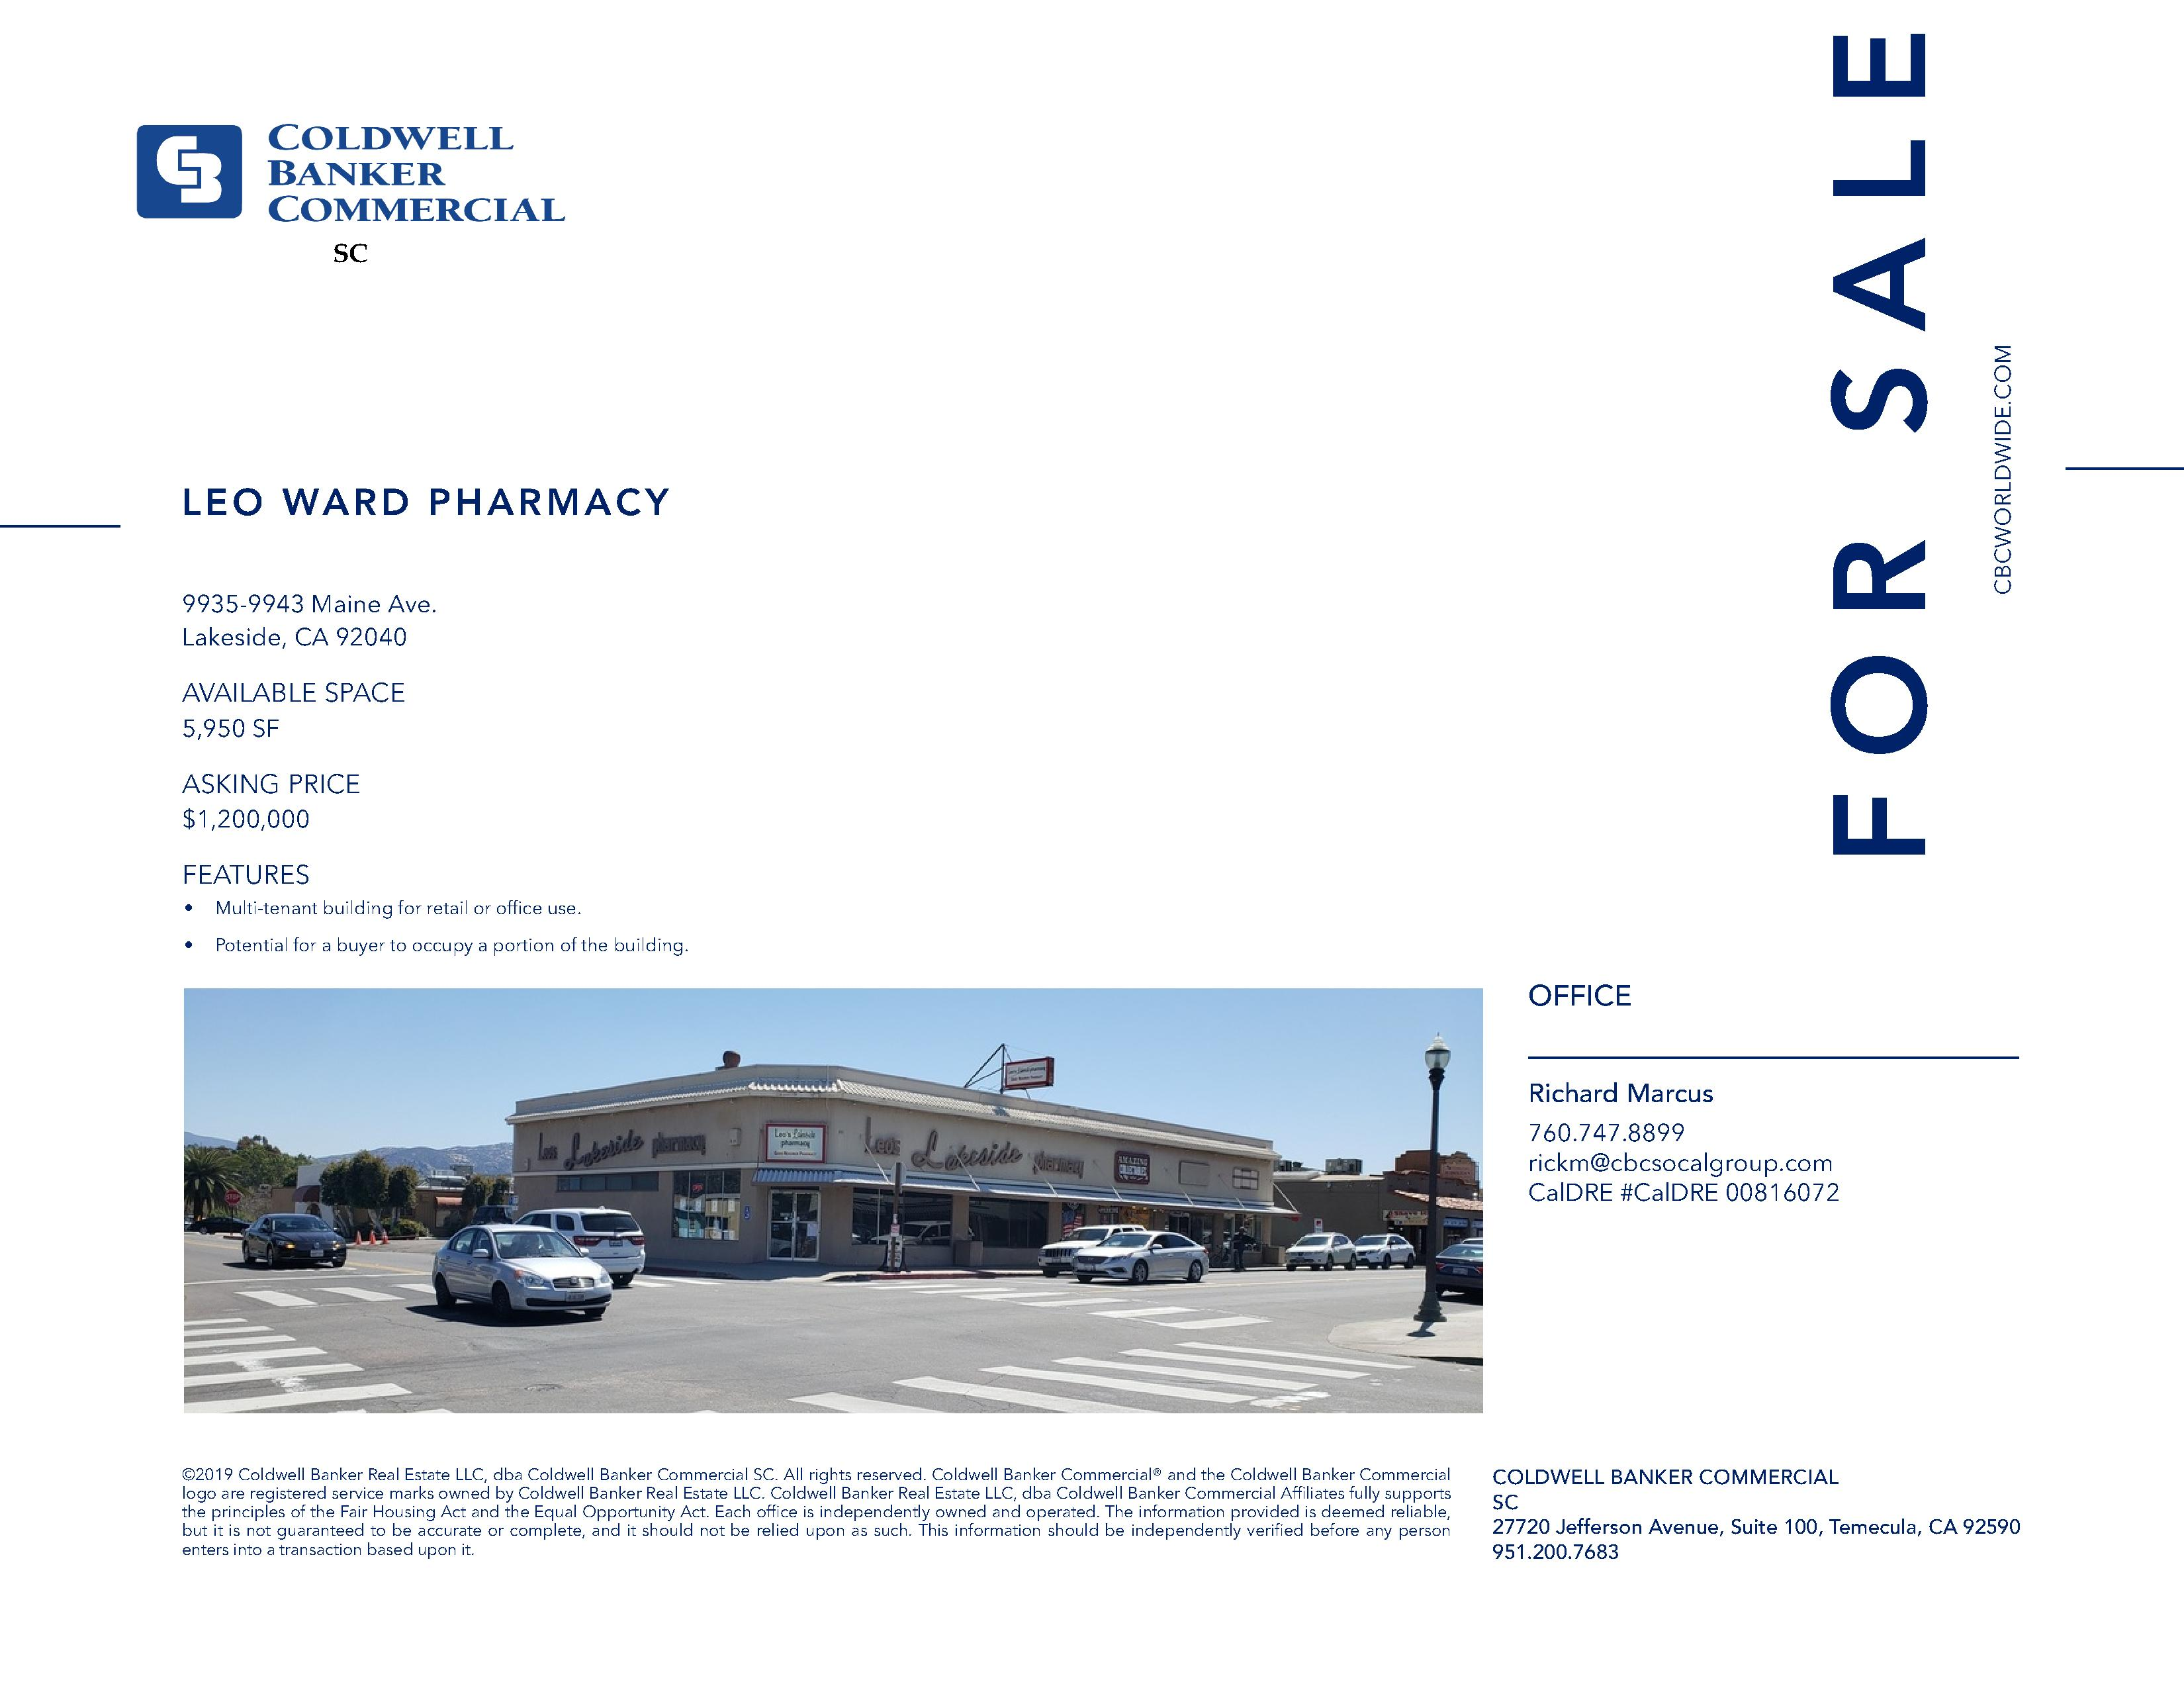 FOR SALE! ±5,950 SF Retail/Office Space in Lakeside